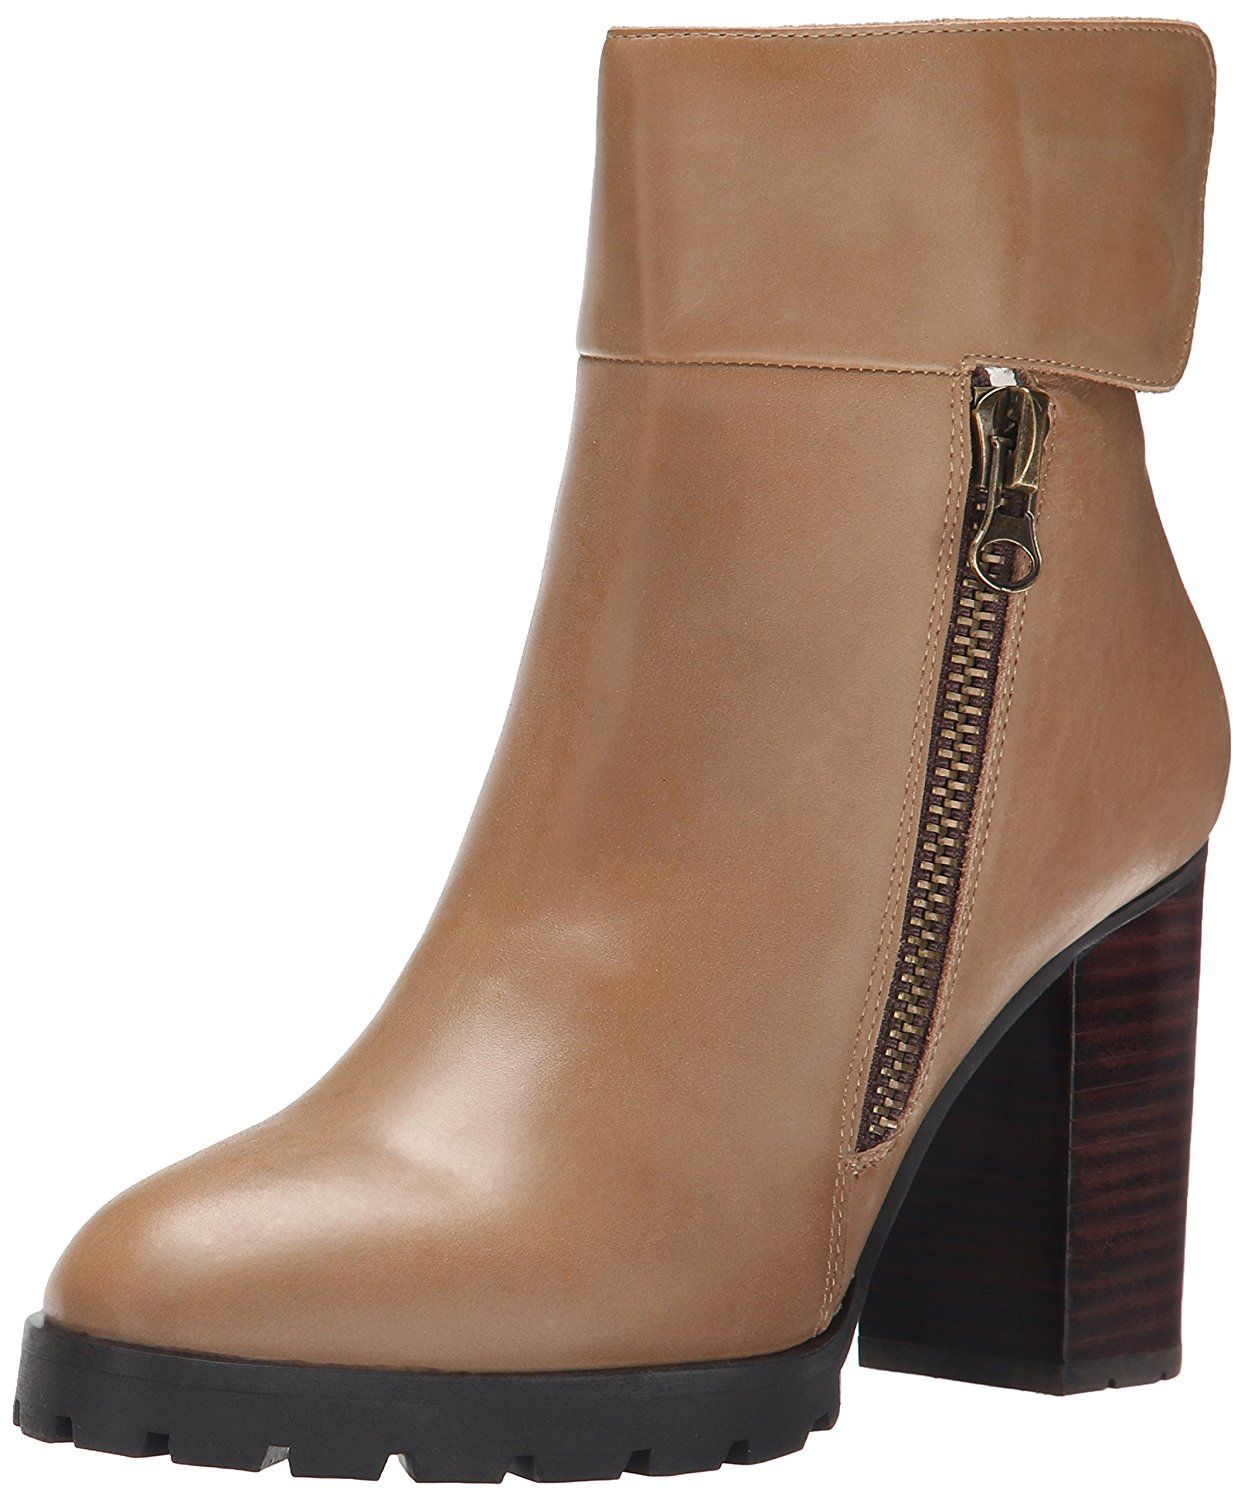 Amazon.com | Sbicca Women's Cello Boot, Black, 6 B US | Ankle & Bootie